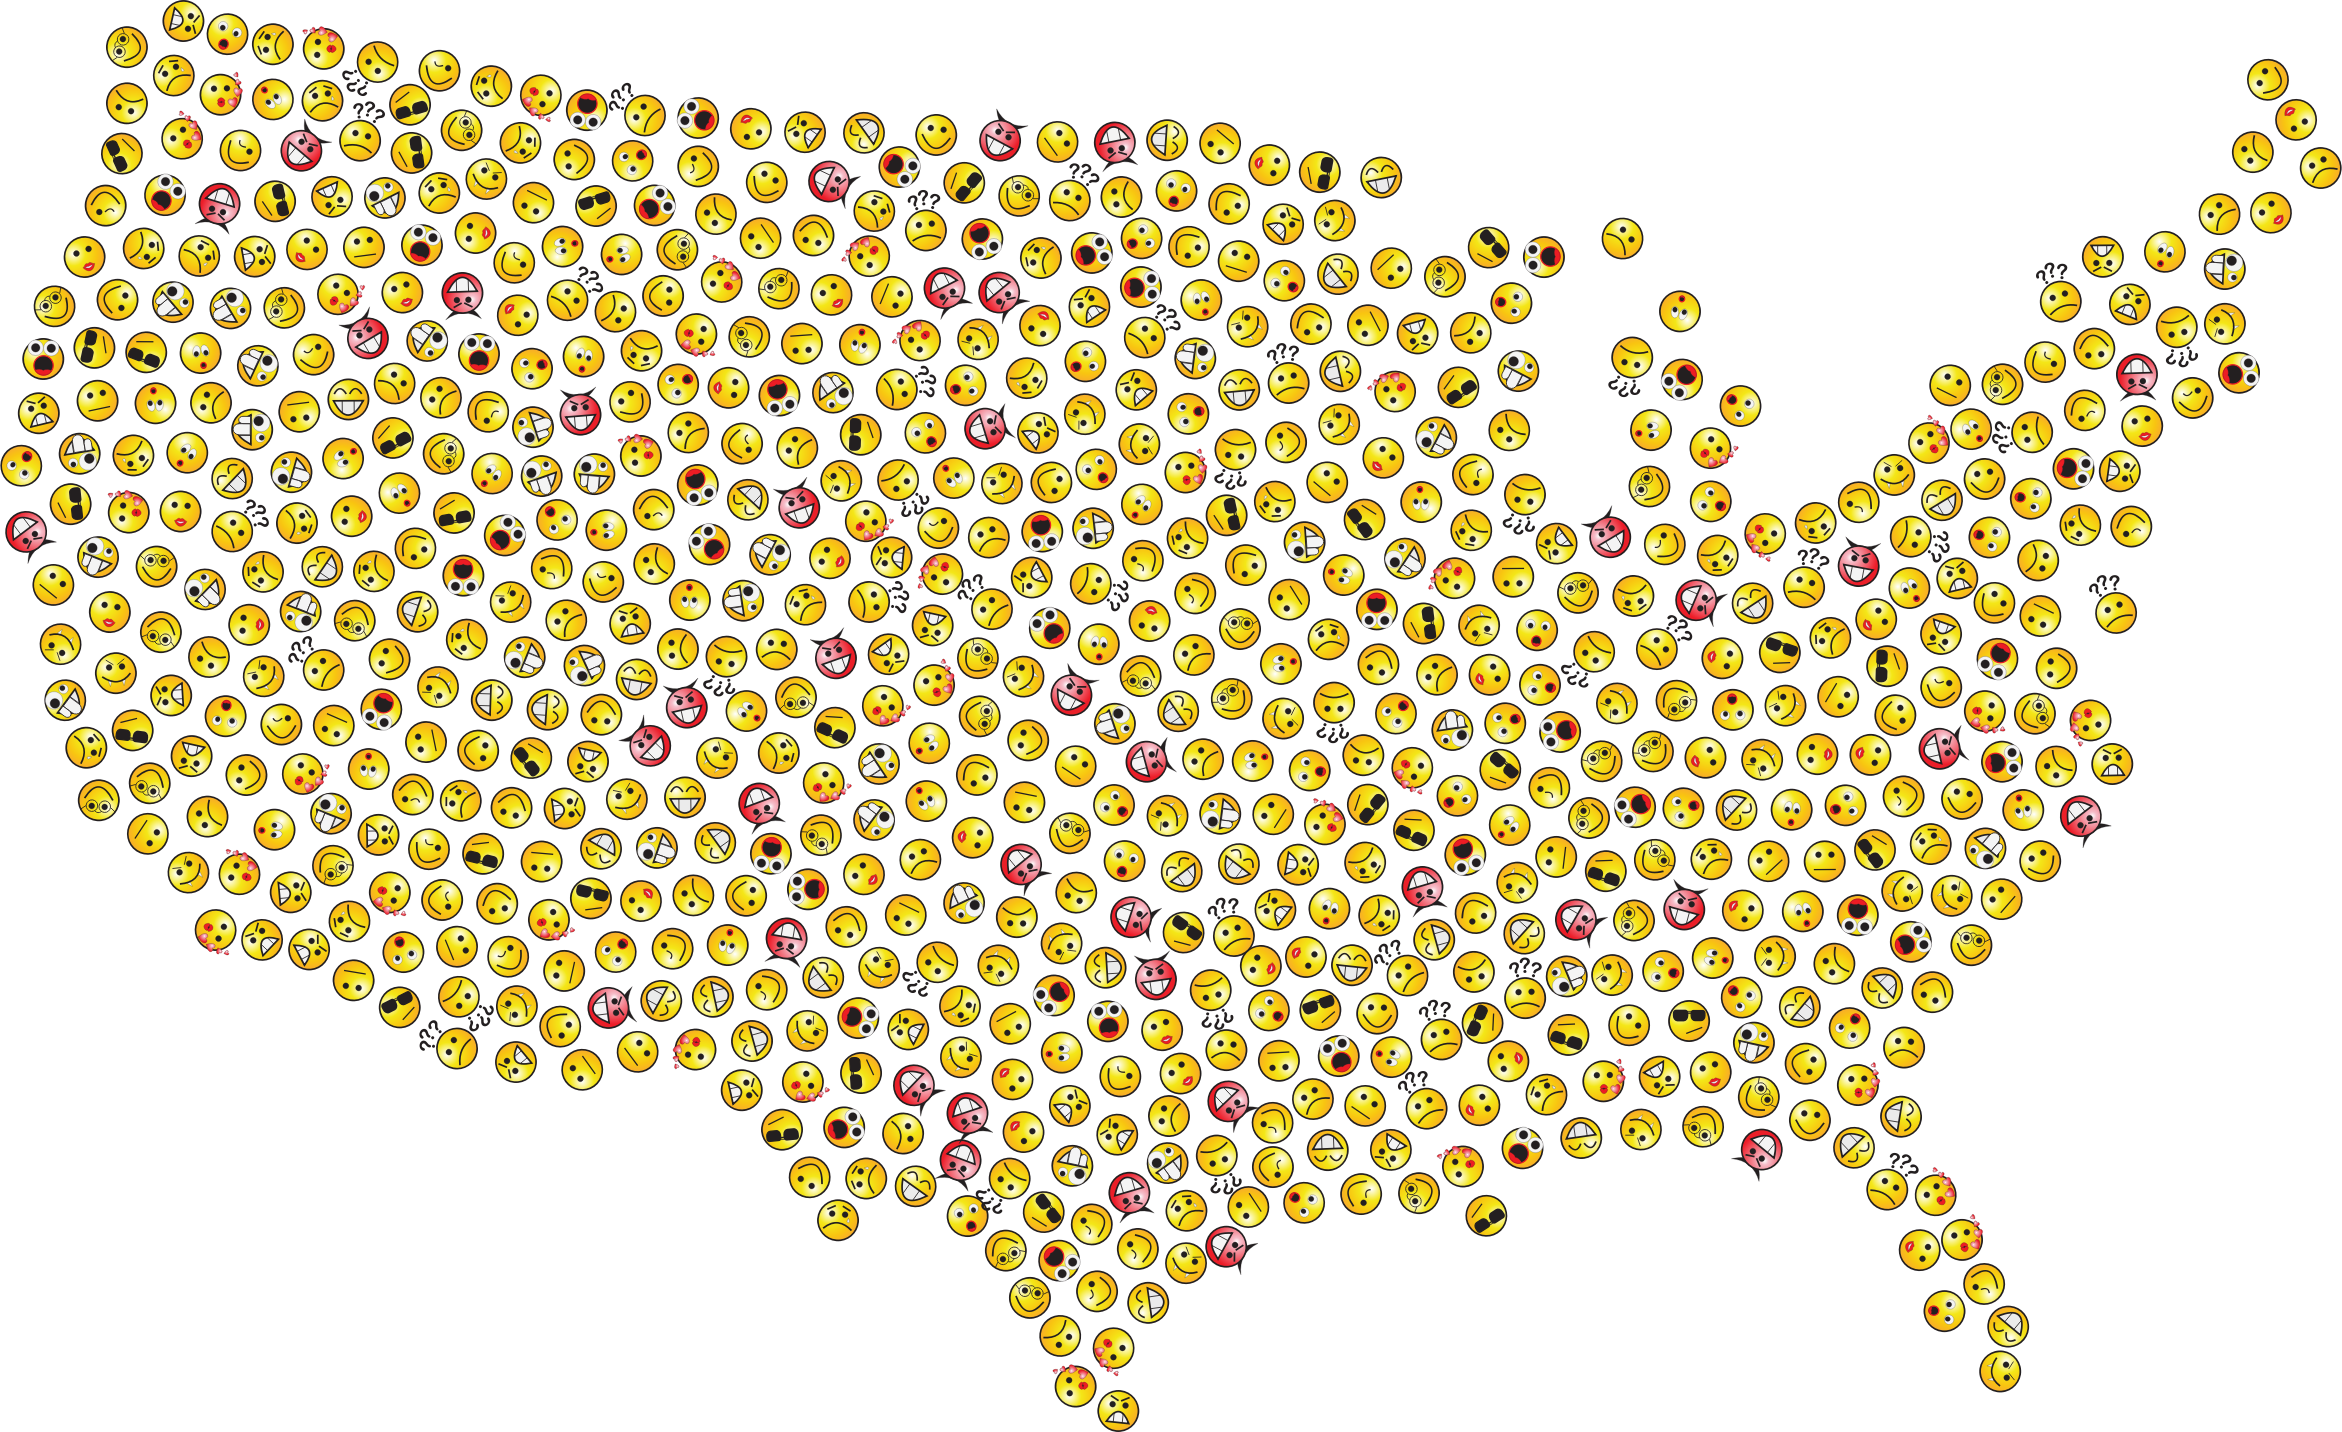 United States Smileys by GDJ